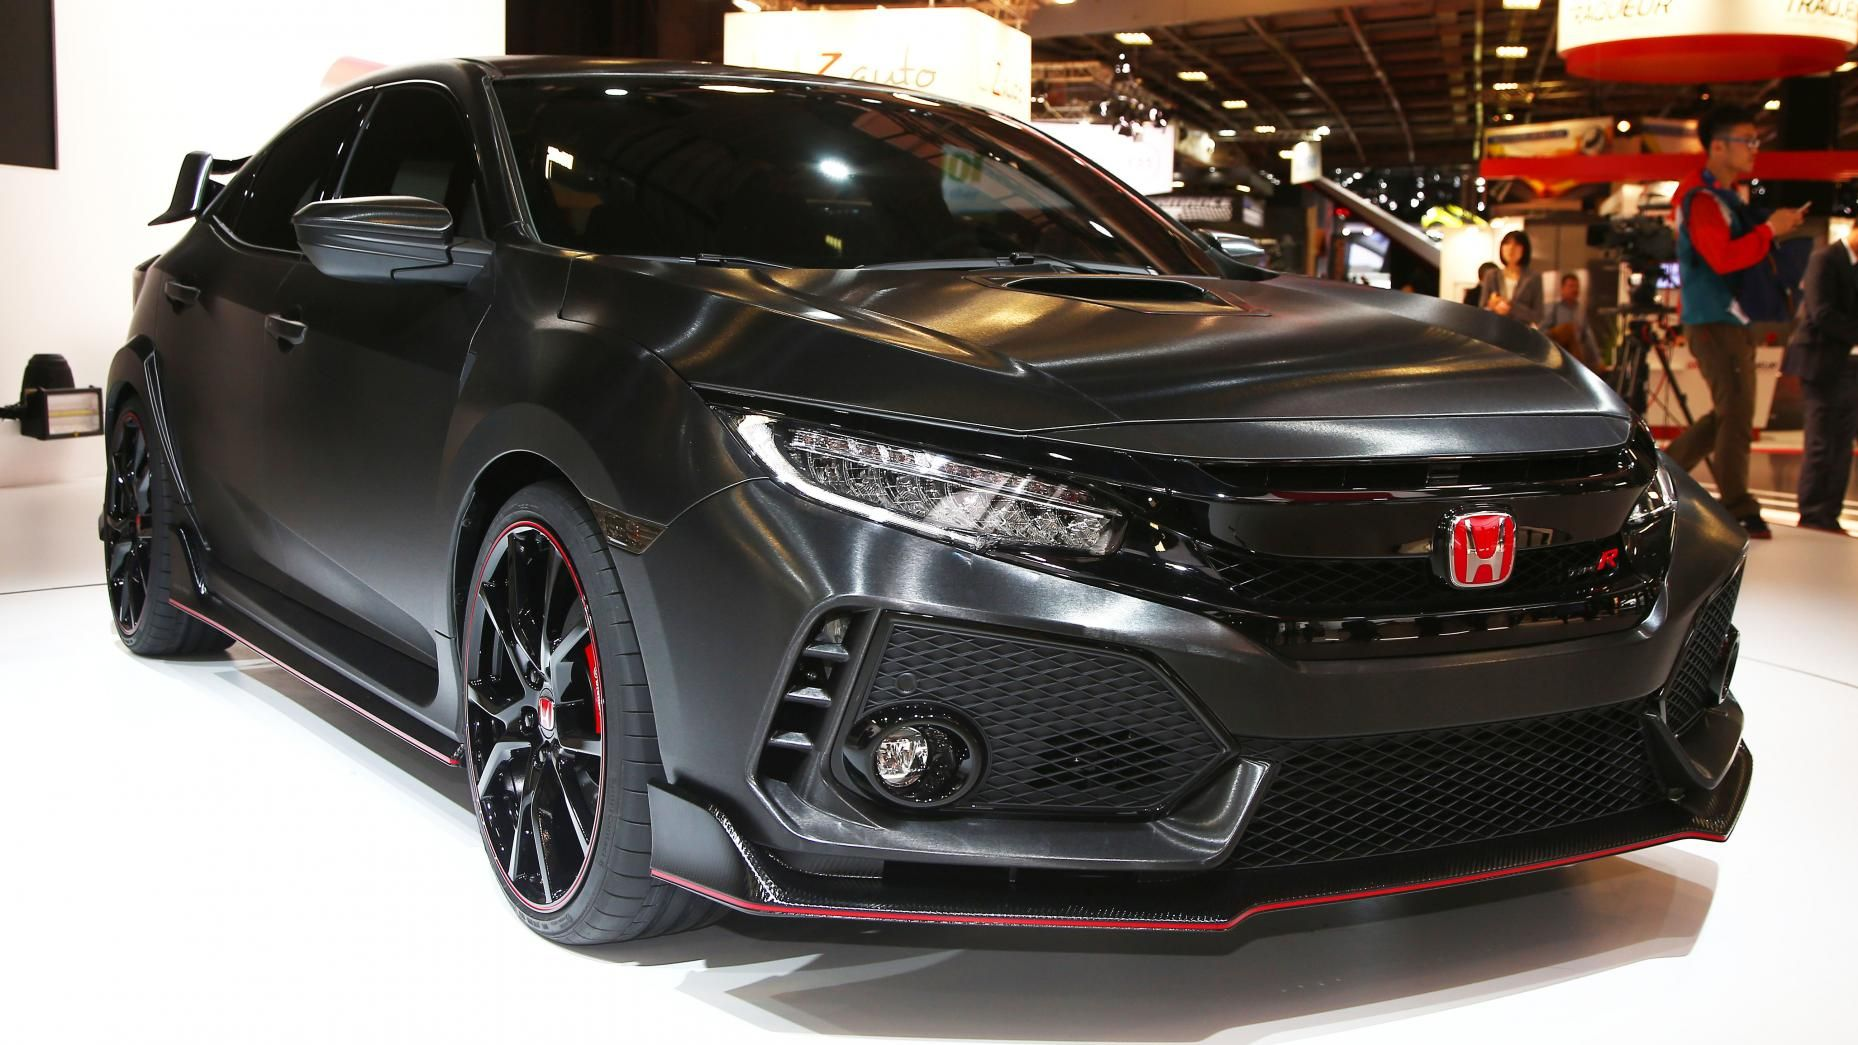 Civic TypeR Honda civic type r, Autos, Autos y motos